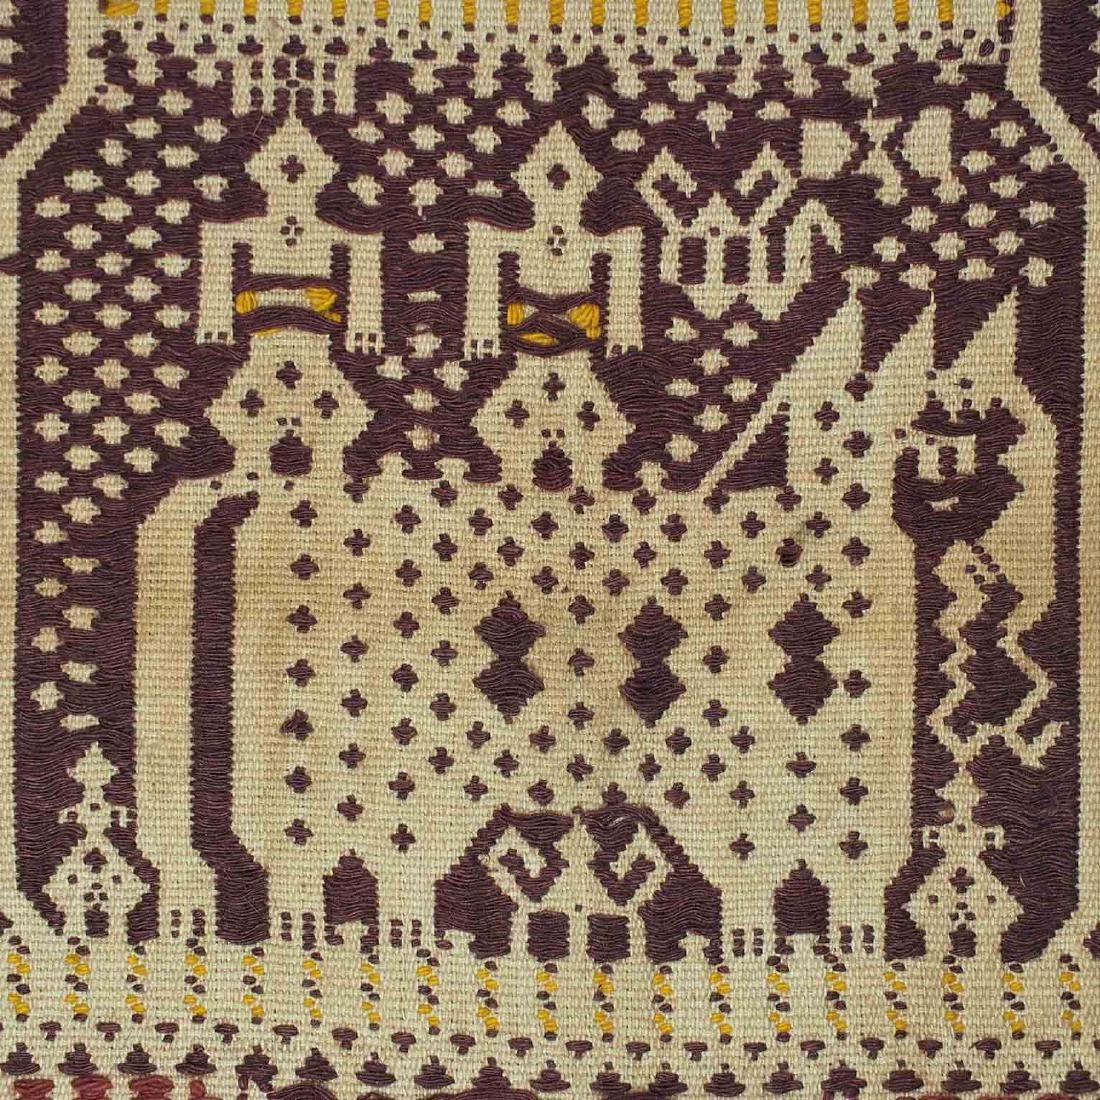 Old Carpet with Typical Lampung Design, Lampung - 4